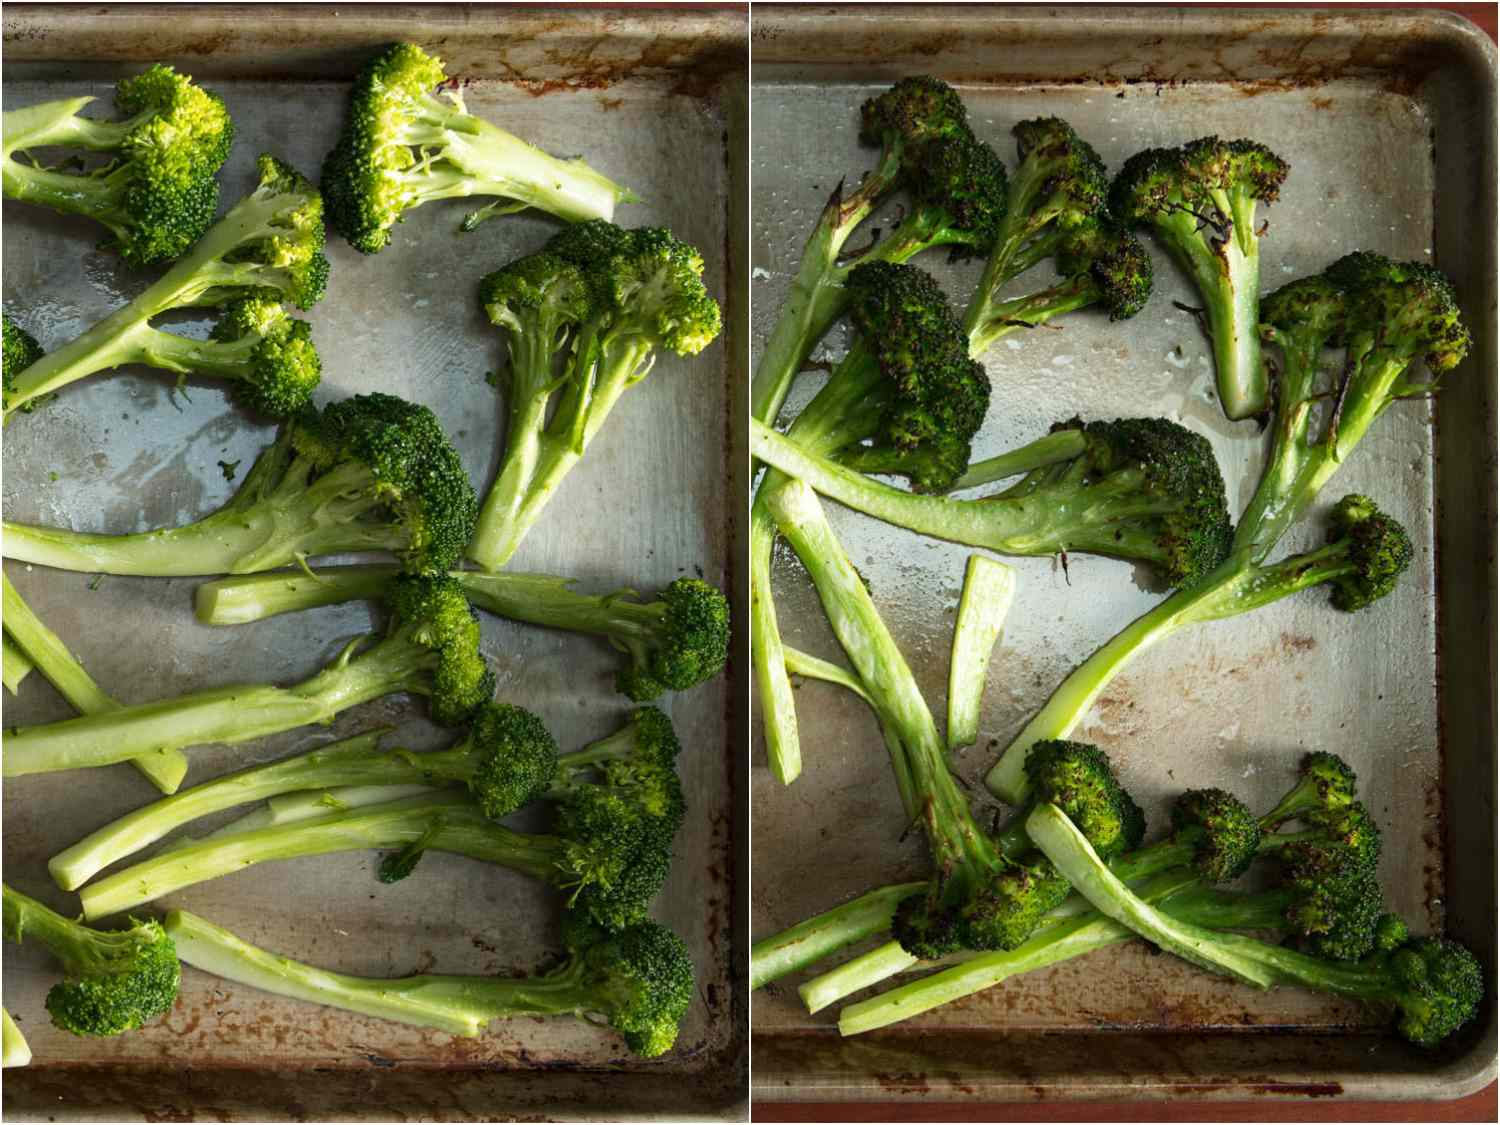 Collage of photos of broccoli florets on a sheet pan, before and after broiling